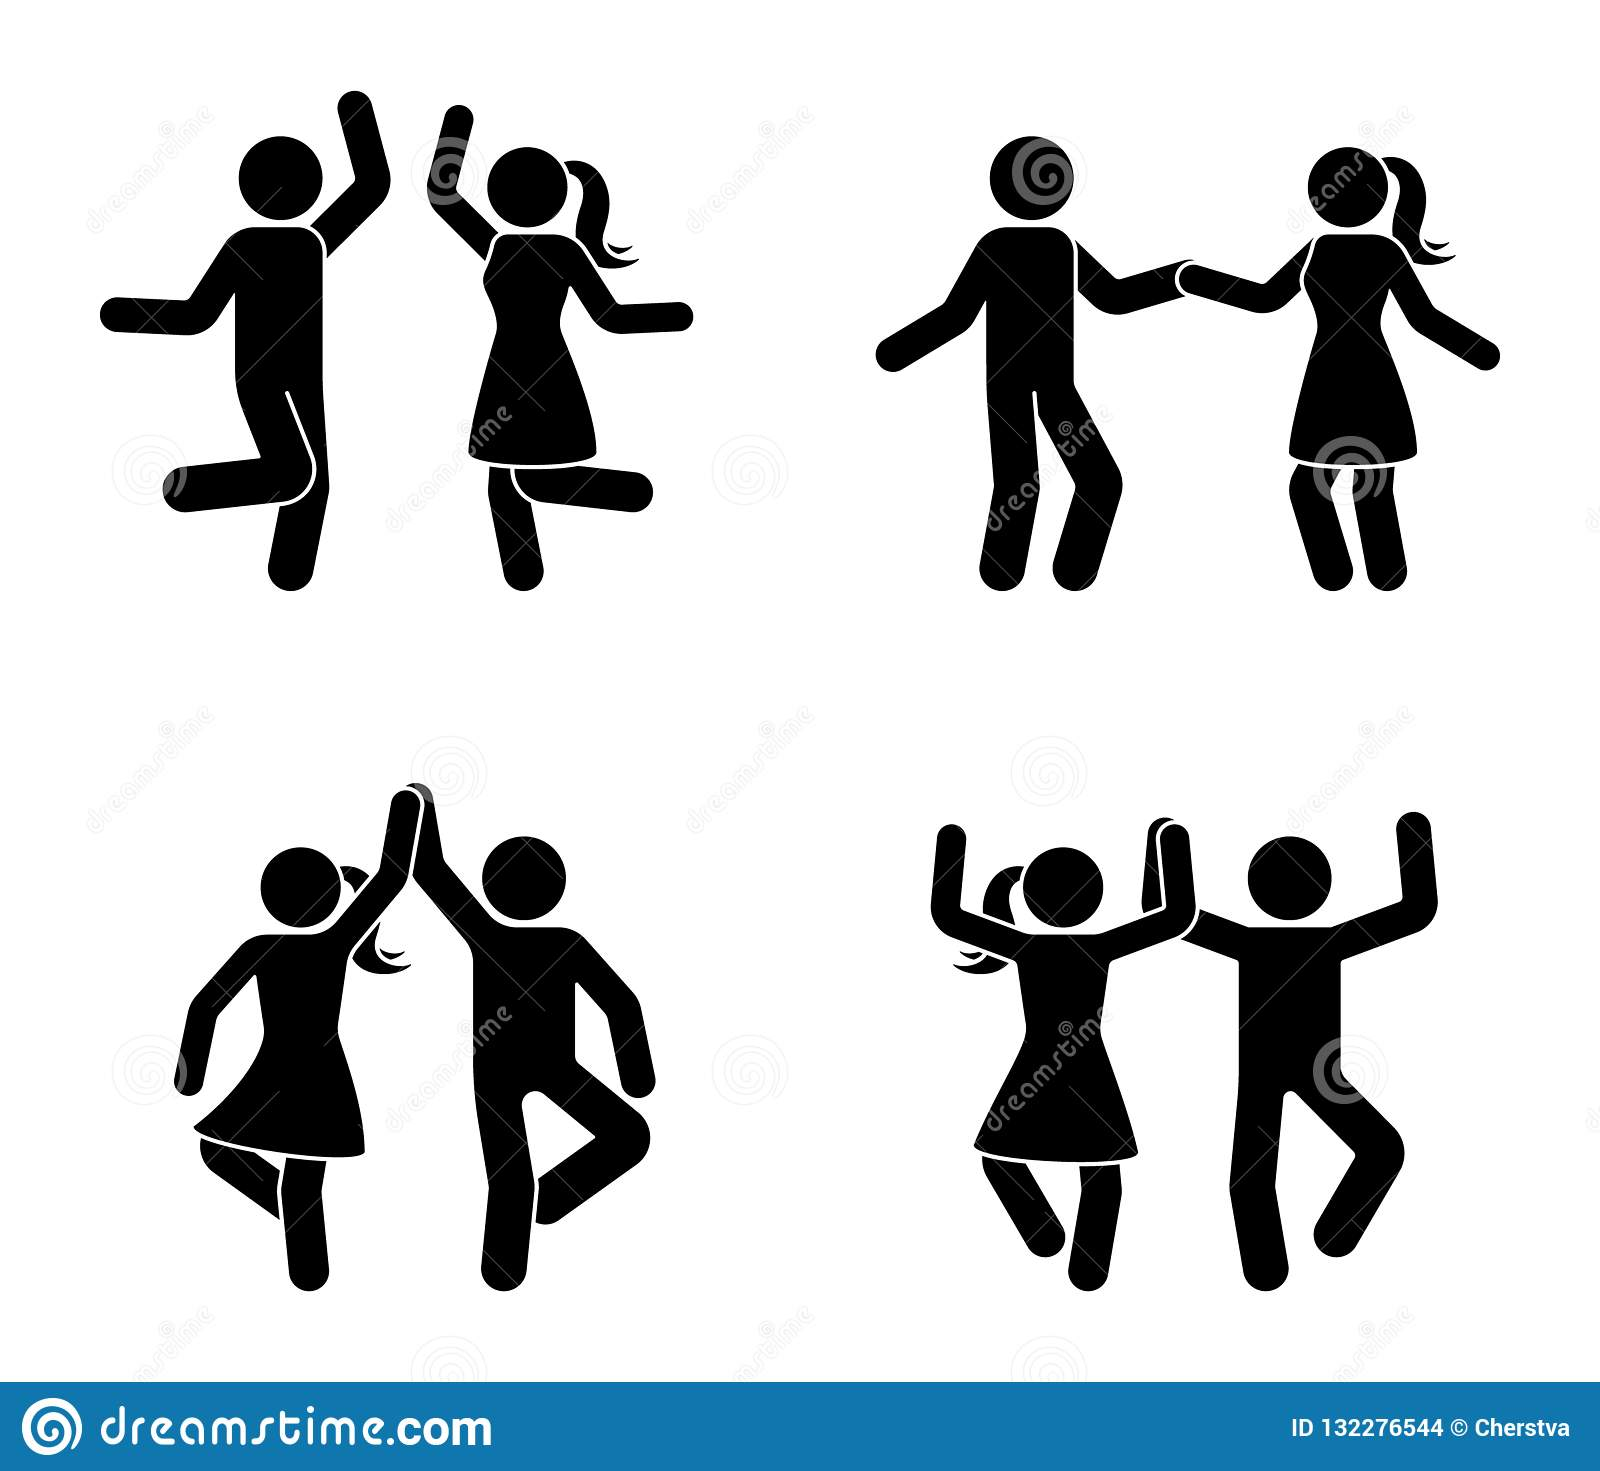 Happy male and female stick figure dancing together. Black and white party icon pictogram.